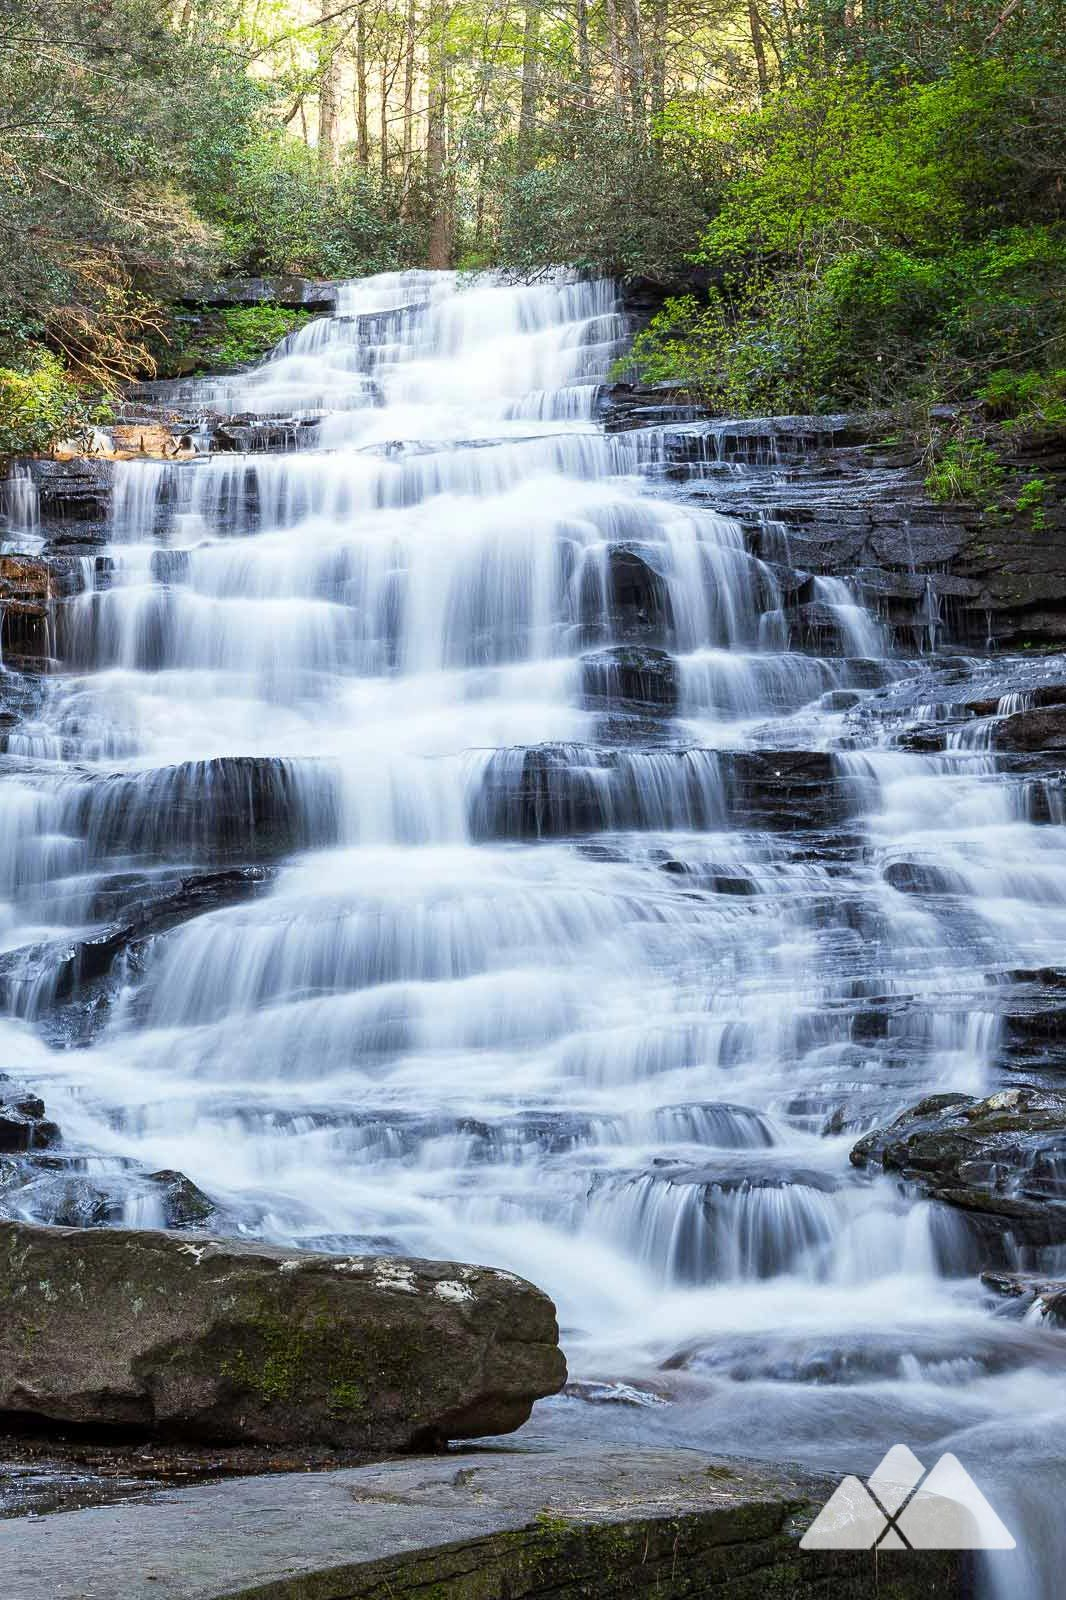 Georgia waterfall hikes: our favorite beginner-friendly and family-friendly favorite trails under two miles #hiking #running #atlanta #georgia #travel #outdoors #adventure